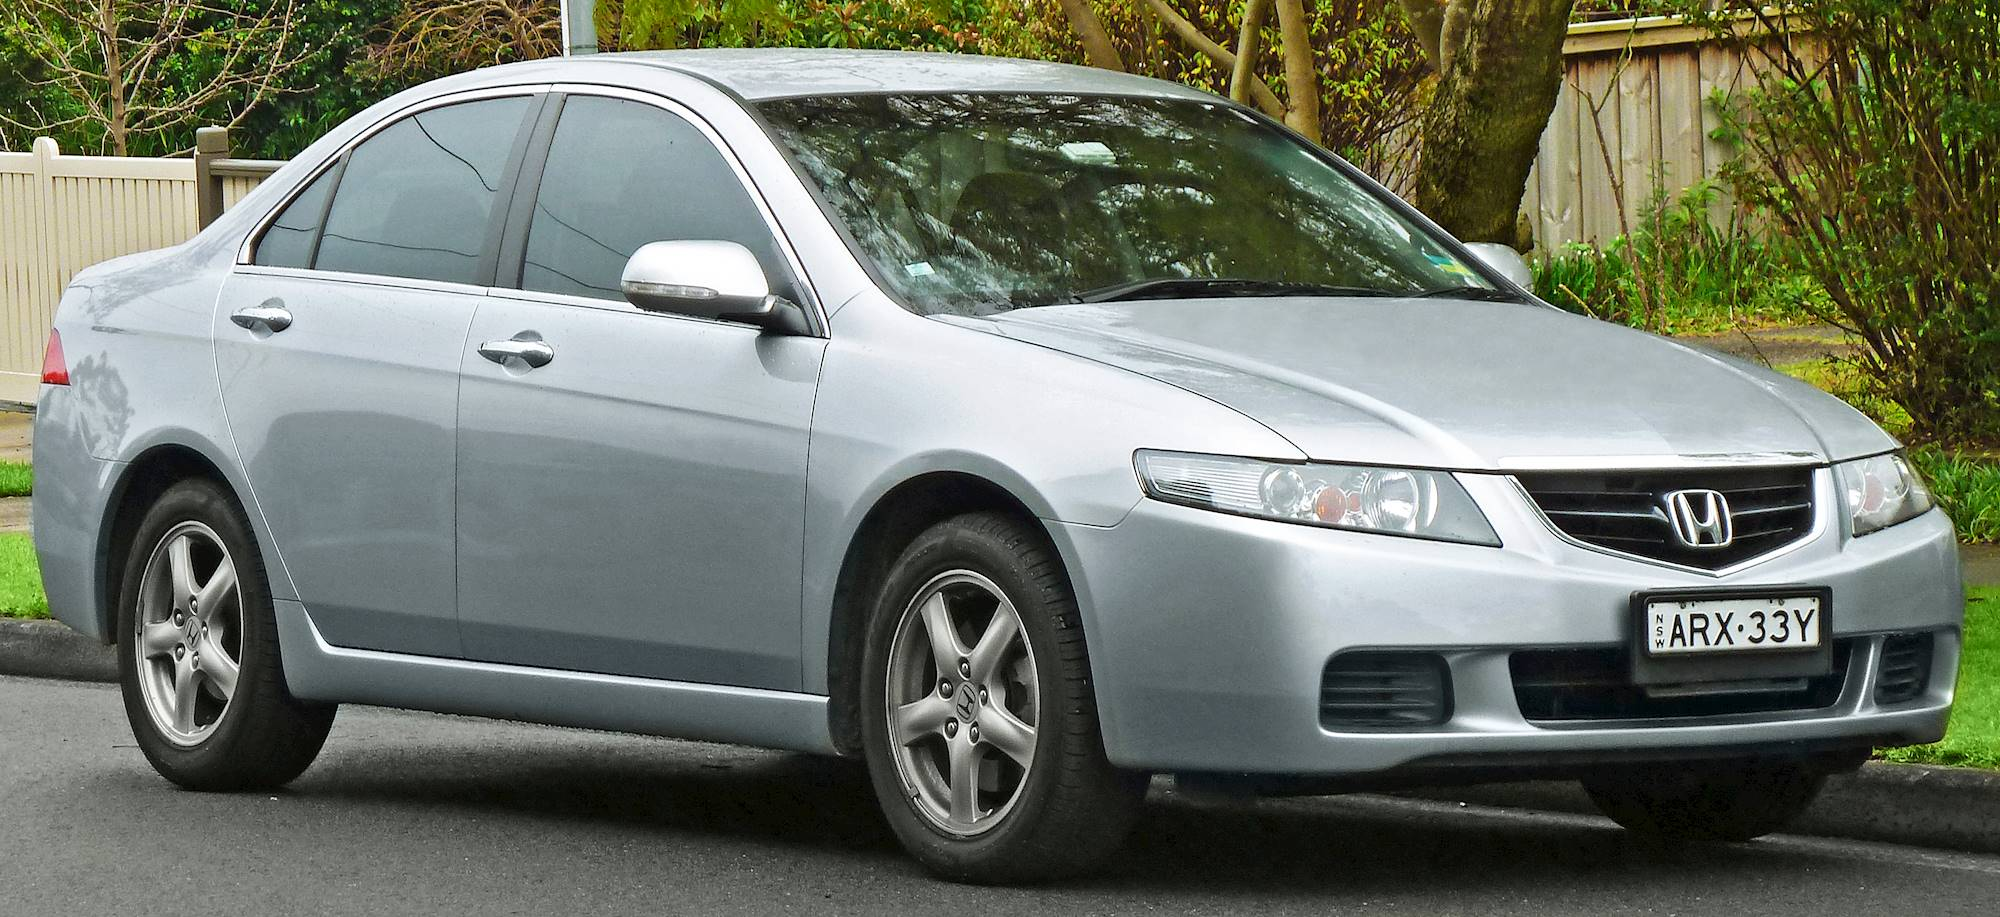 2005 Honda Accord Euro